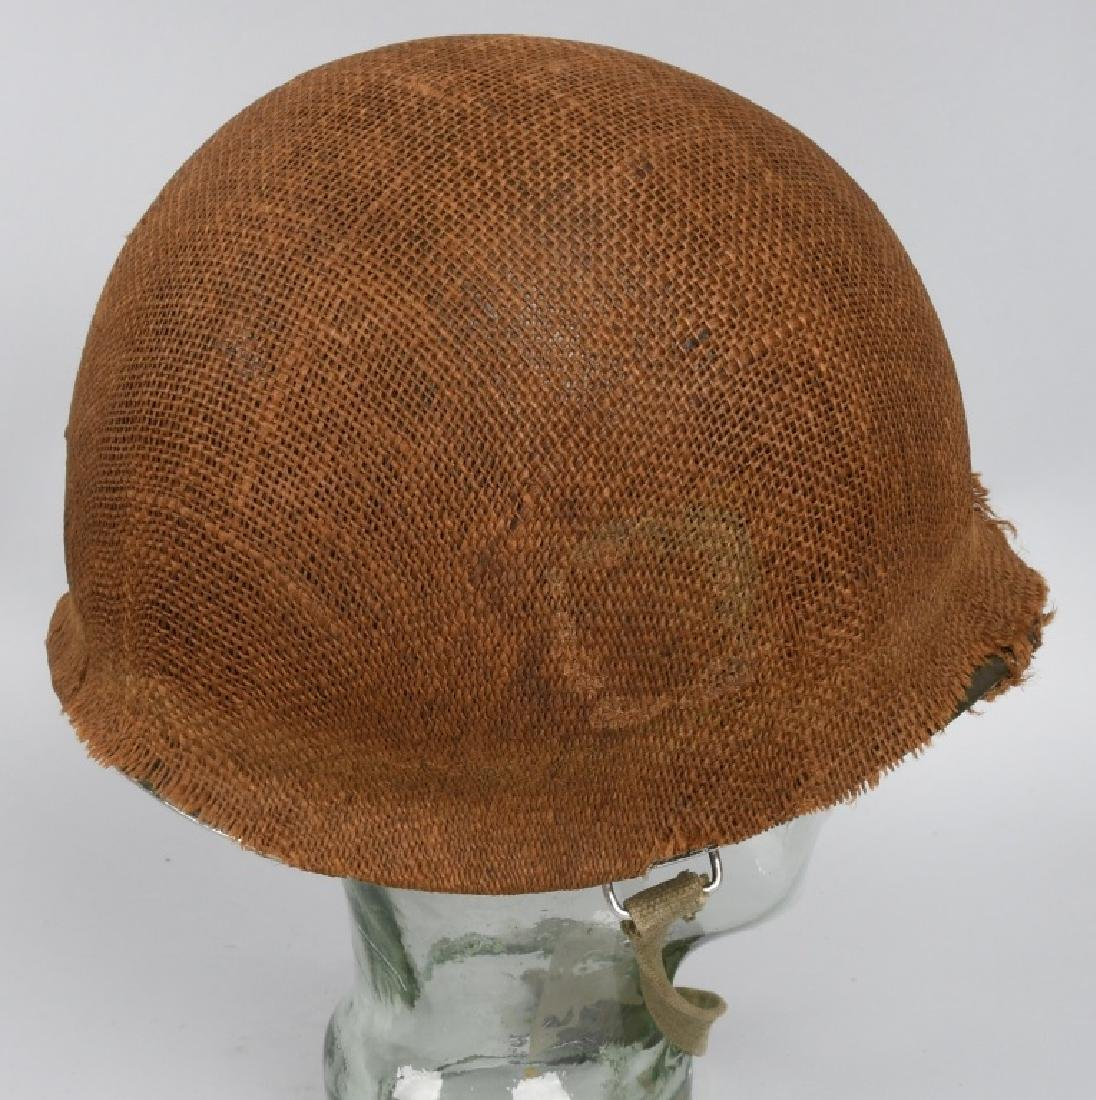 WWII MI FRONT SEAM HELMET WITH BURLAP COVER IDED - 3